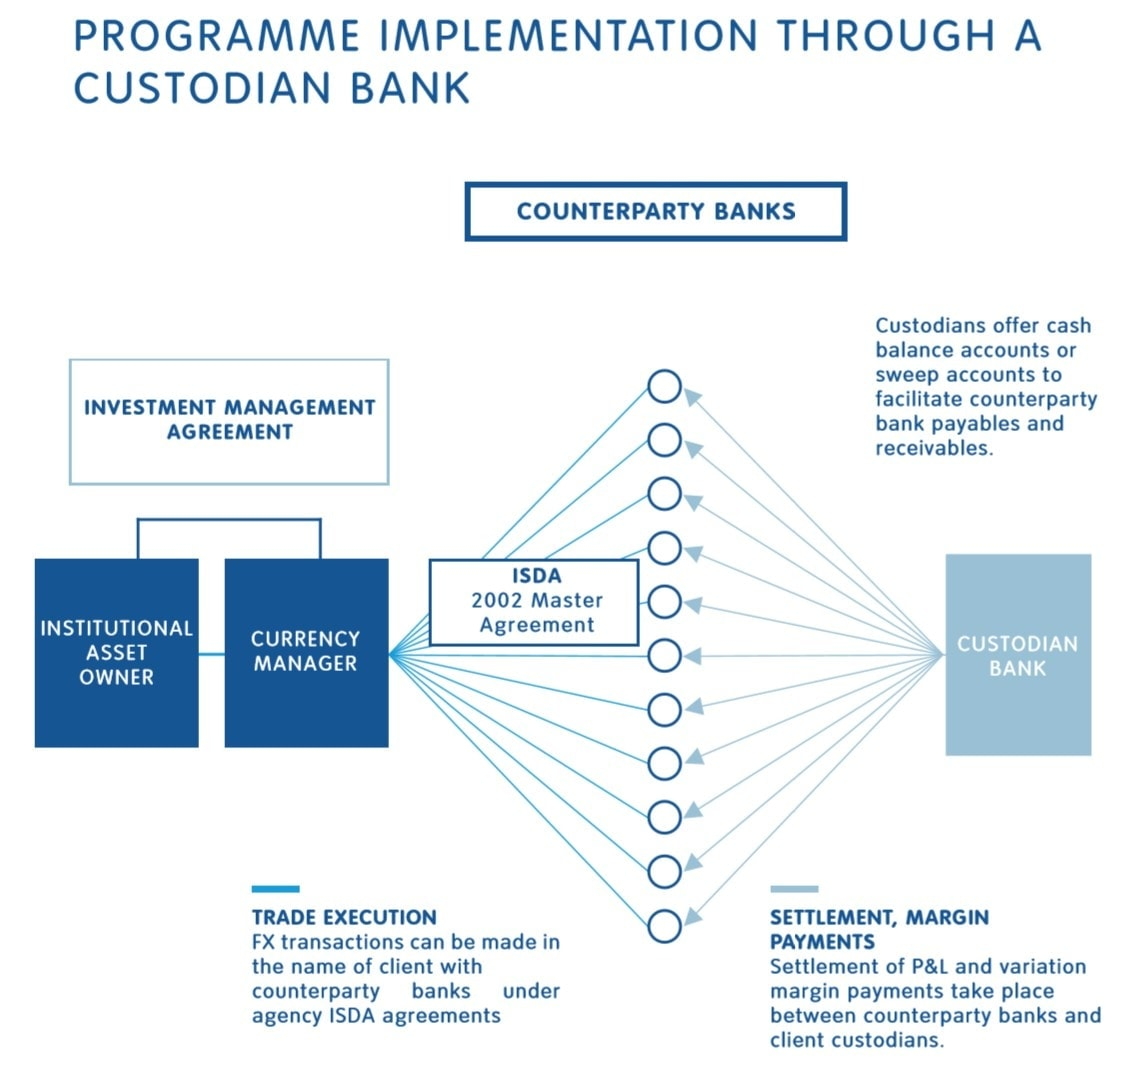 Programme implementationthrough a custodian bank